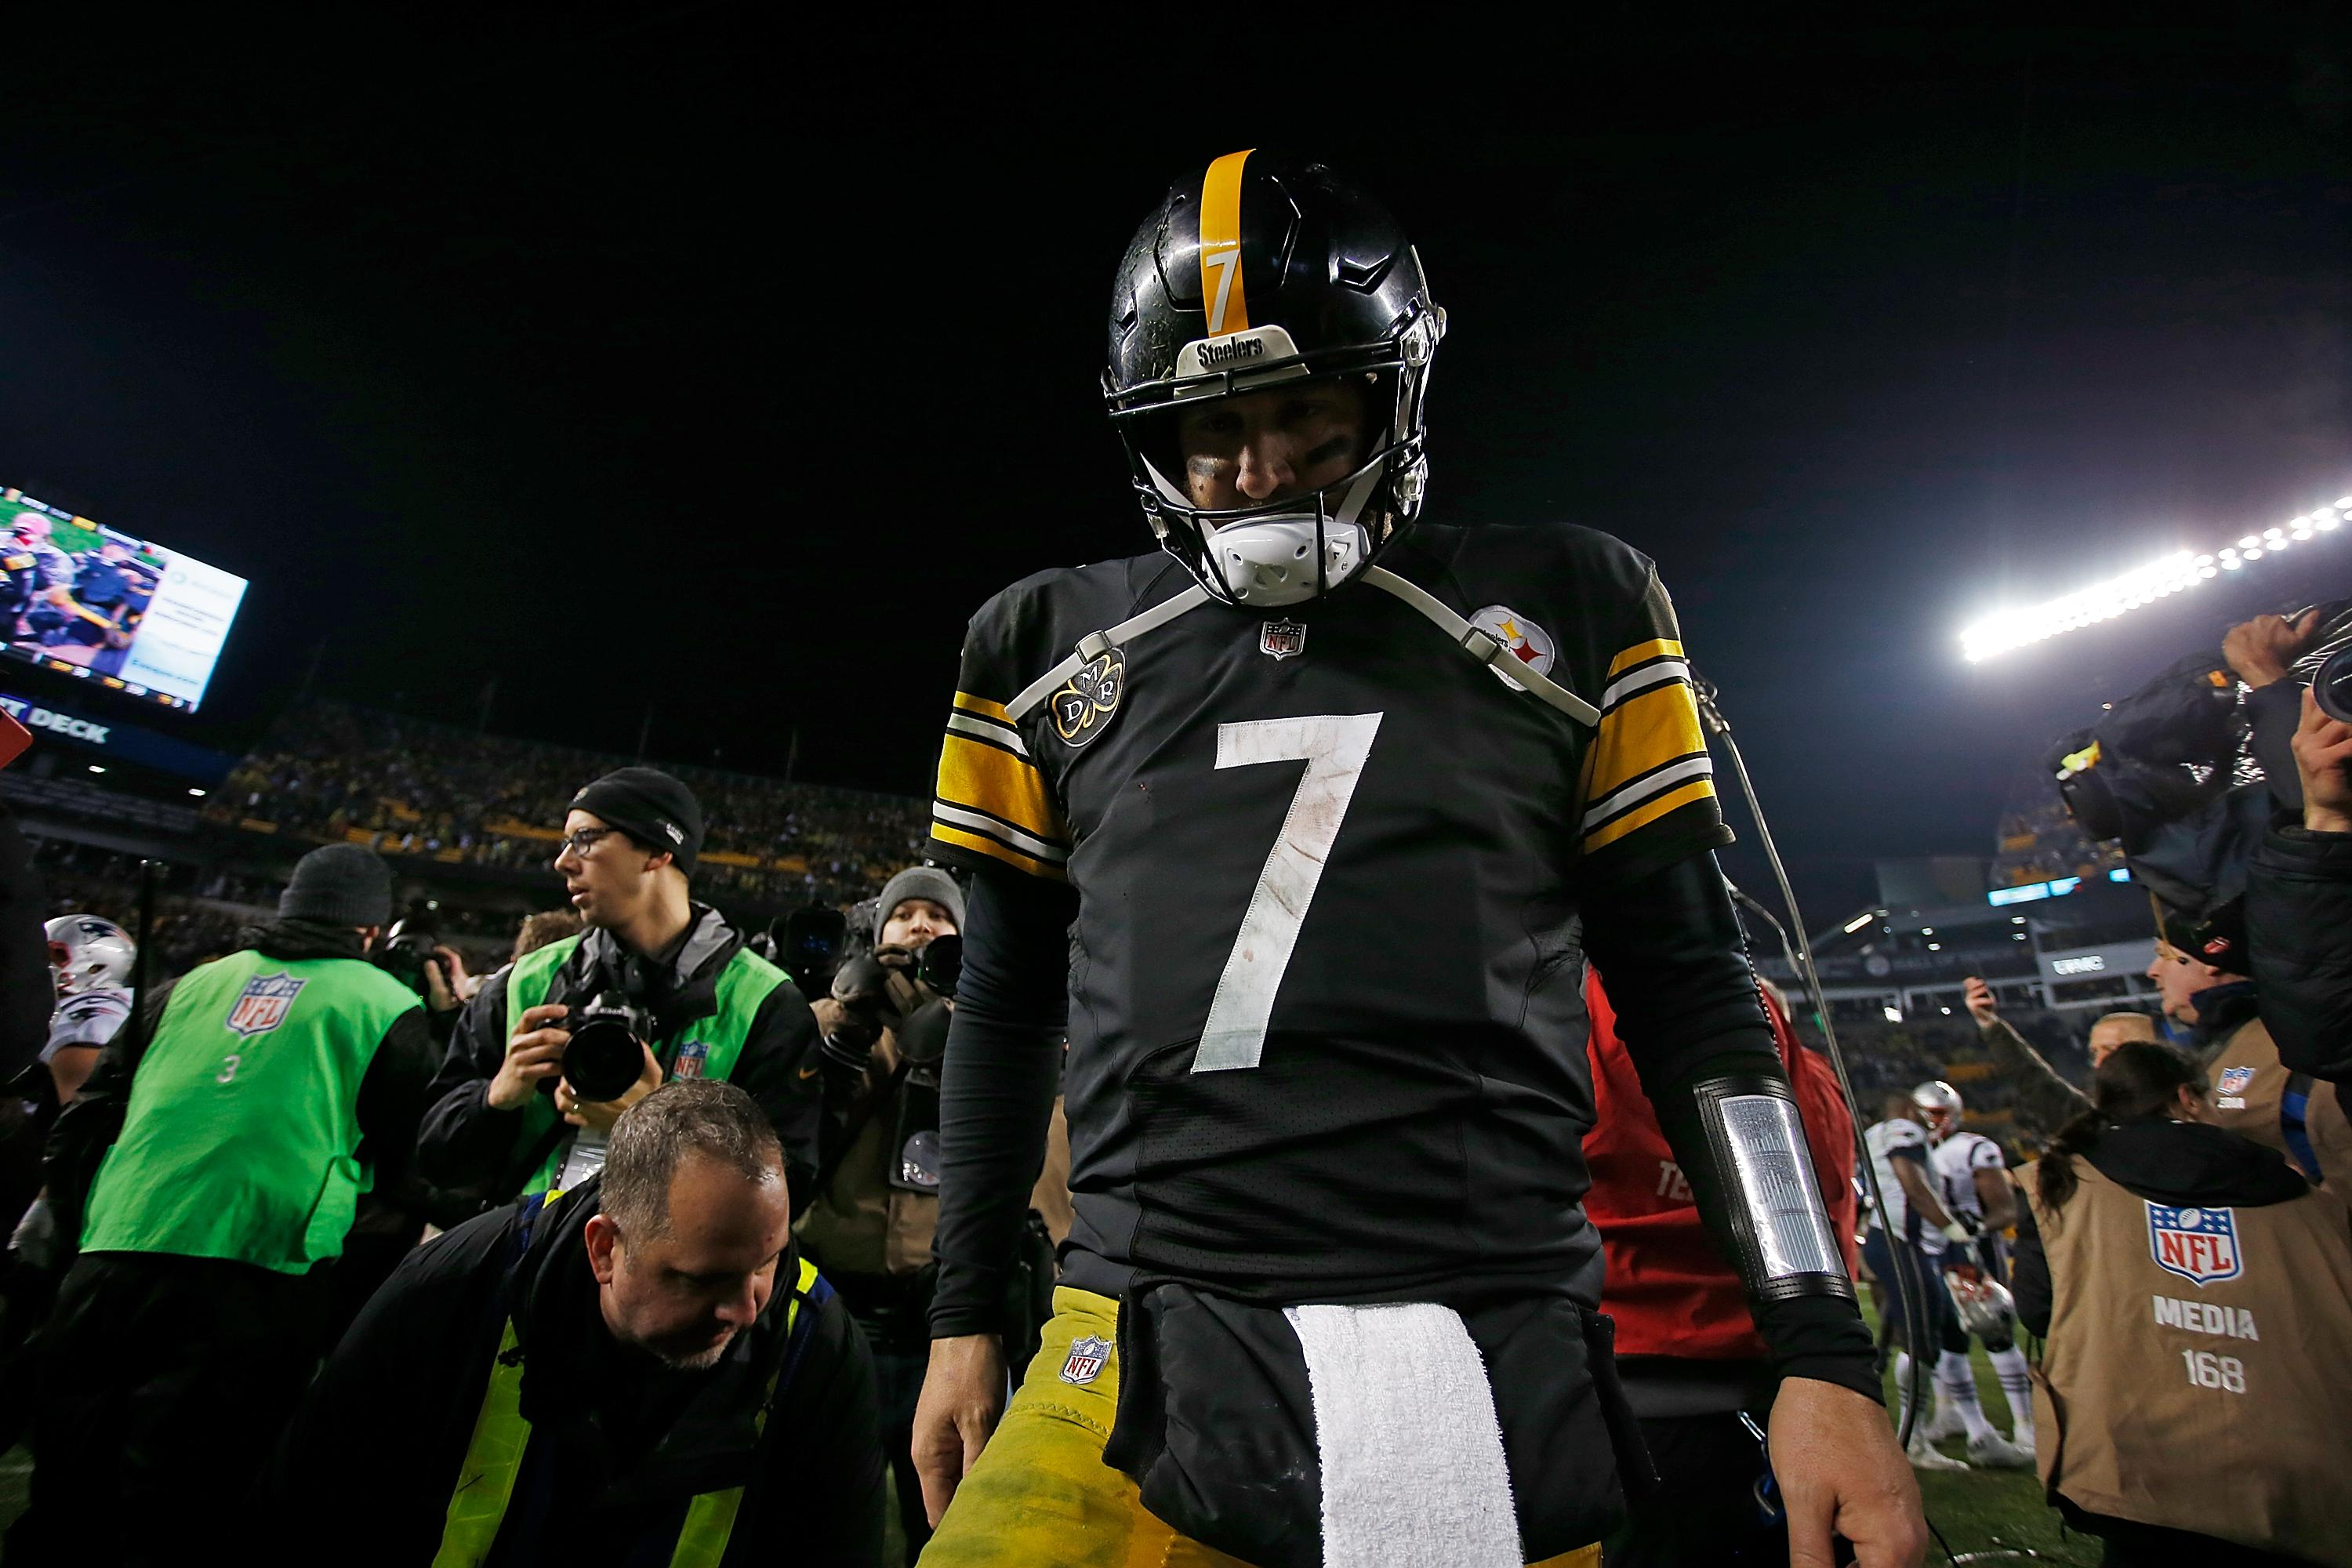 PITTSBURGH, PA - DECEMBER 17: Ben Roethlisberger #7 of the Pittsburgh Steelers walks off the field at the conclusion of the New England Patriots 27-24 win over the Pittsburgh Steelers at Heinz Field on December 17, 2017 in Pittsburgh, Pennsylvania. (Photo by Justin K. Aller/Getty Images)